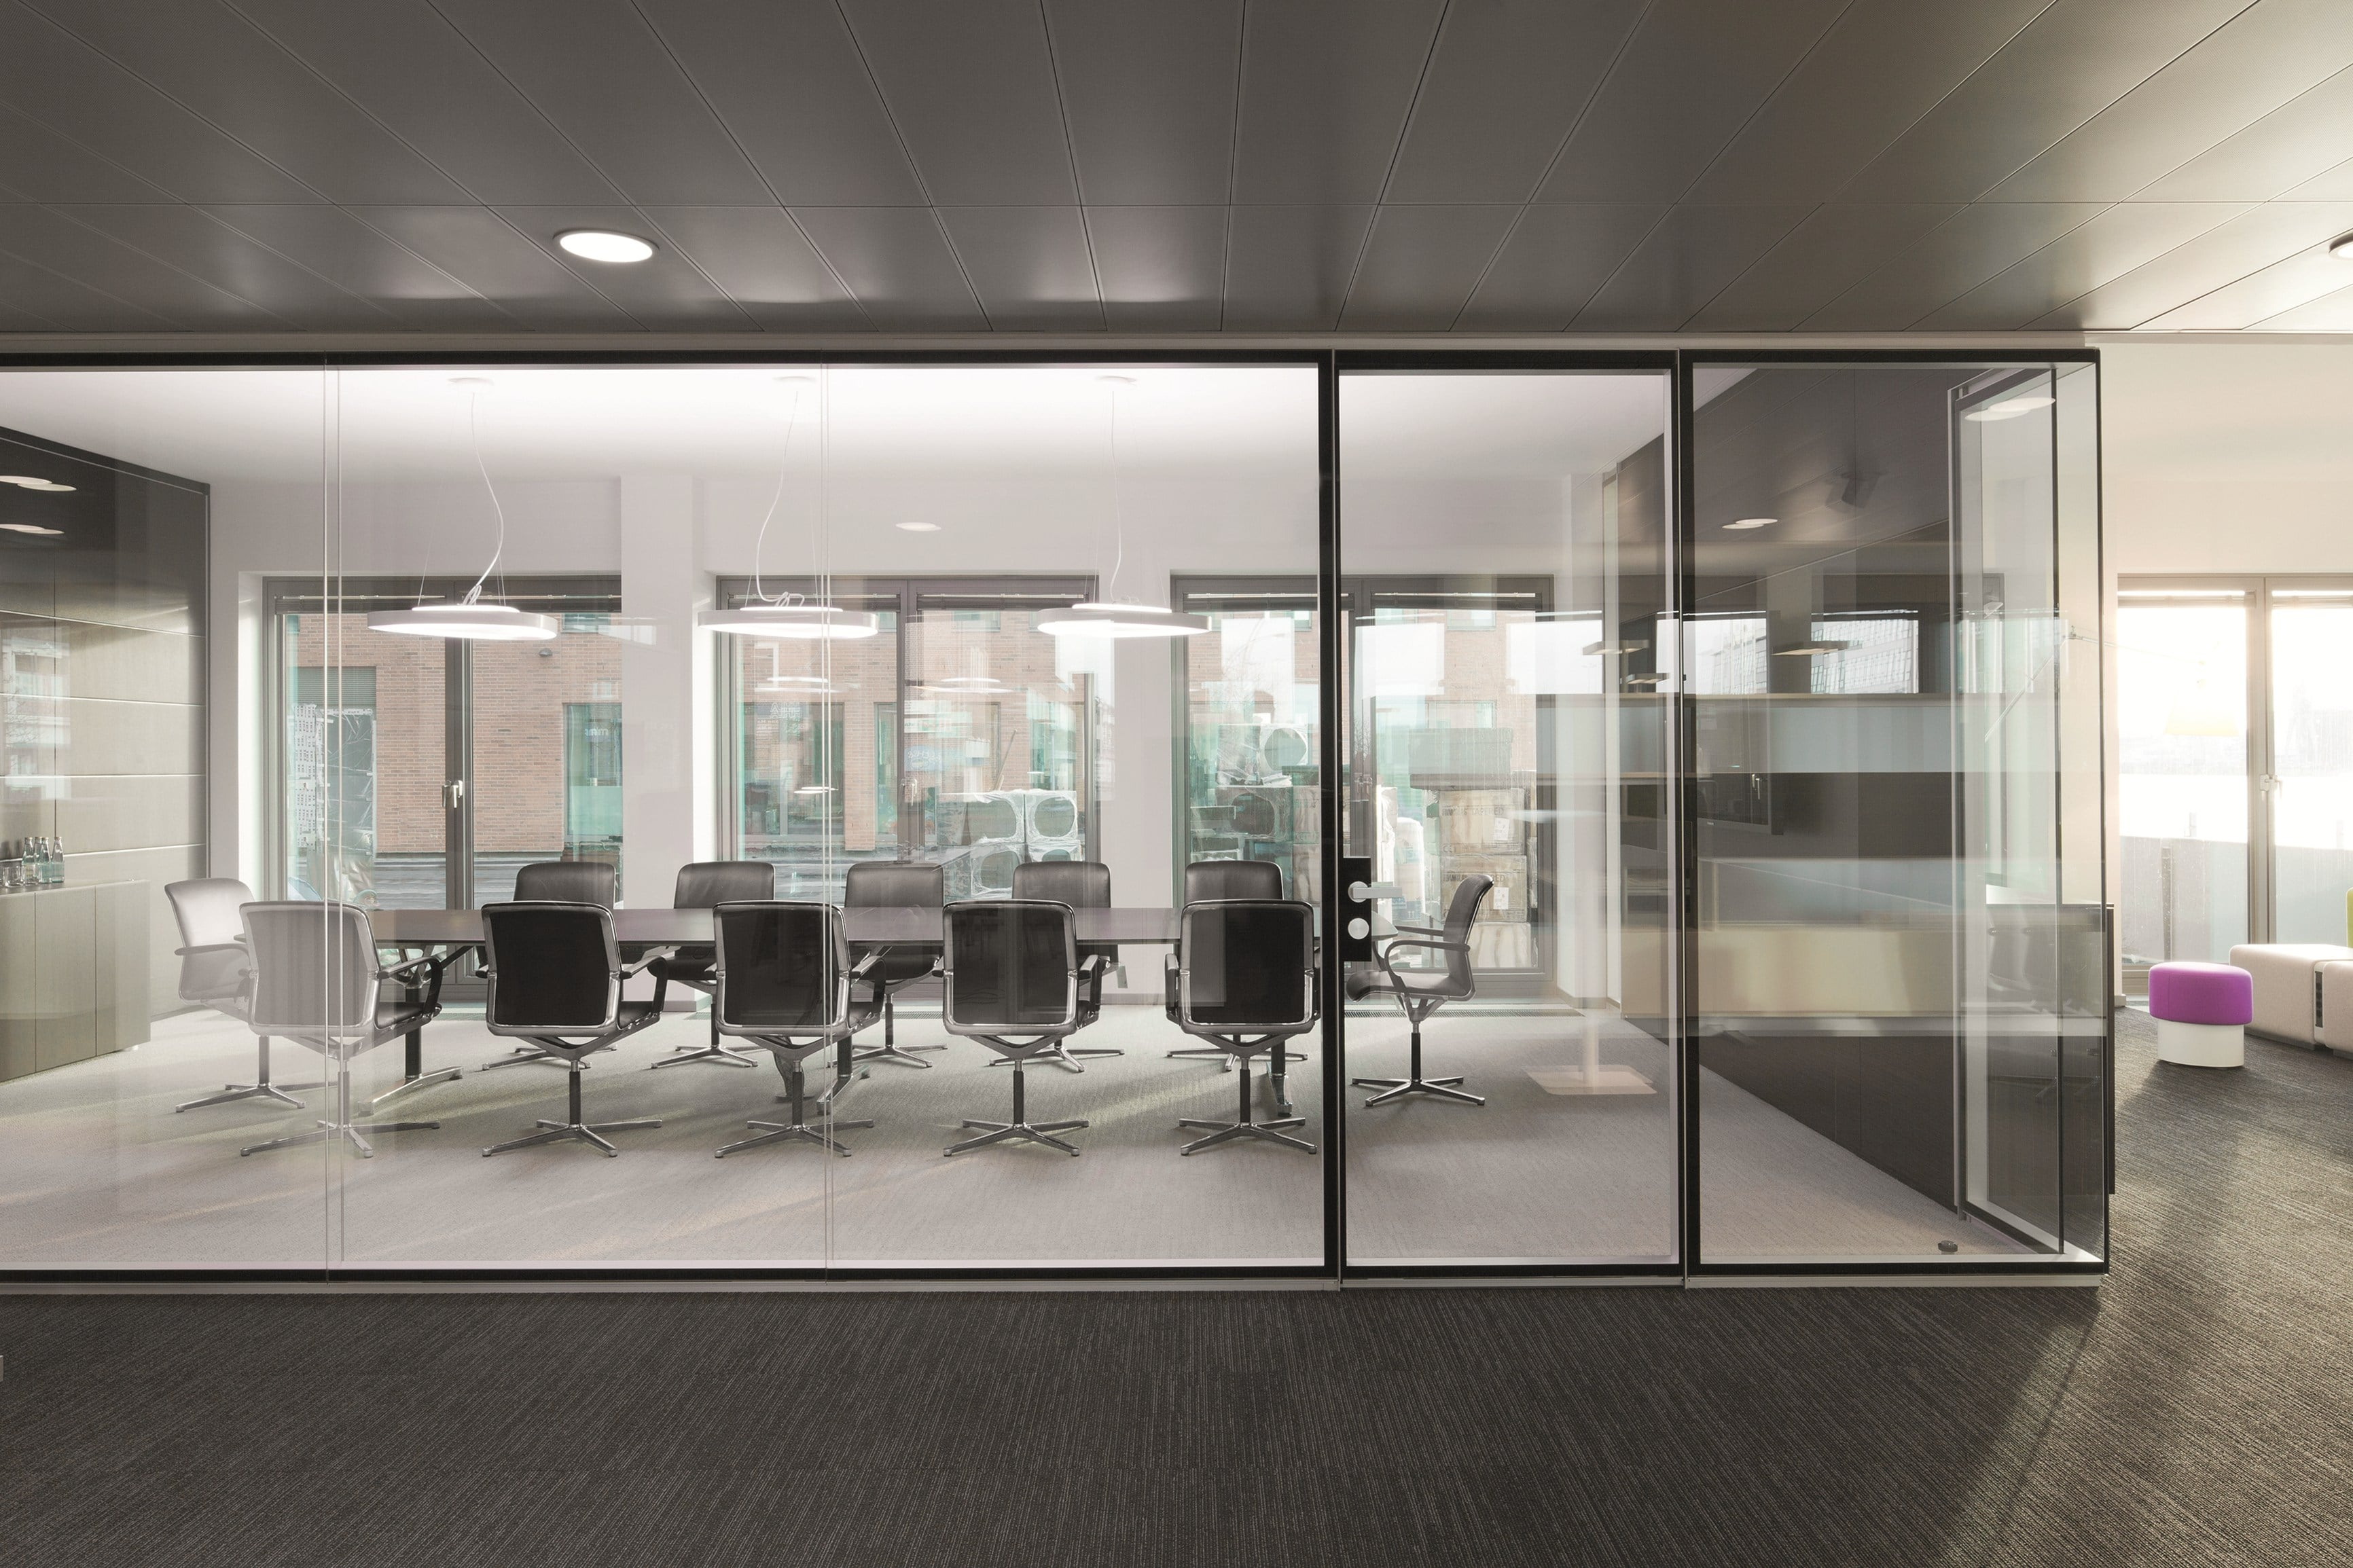 office-partition-glass-walls-10-8180